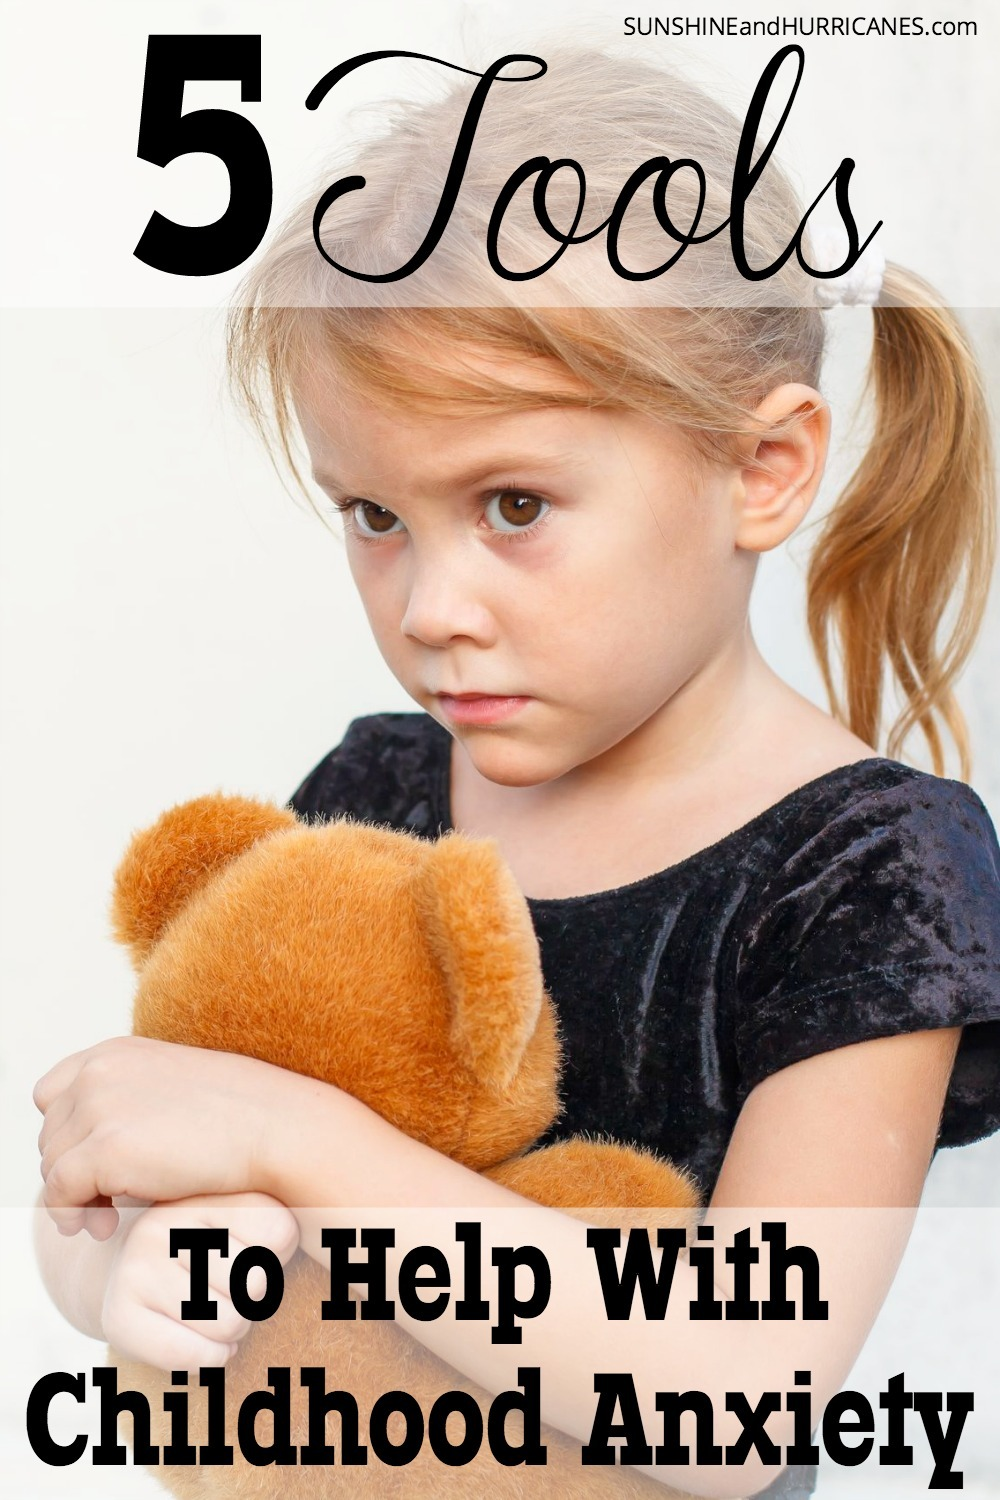 All children have fears, but does your child seem to have worries or fears that are bigger than most kids? Anxiety is actually the most common mental health issue among children and teens, but also the most treatable. Professional help is always the best first course of action, but if you want additional tools to help your child manage their childhood anxiety here is a list of top resources. 5 Tools to Help with Childhood Anxiety - SunshineandHurricanes.com